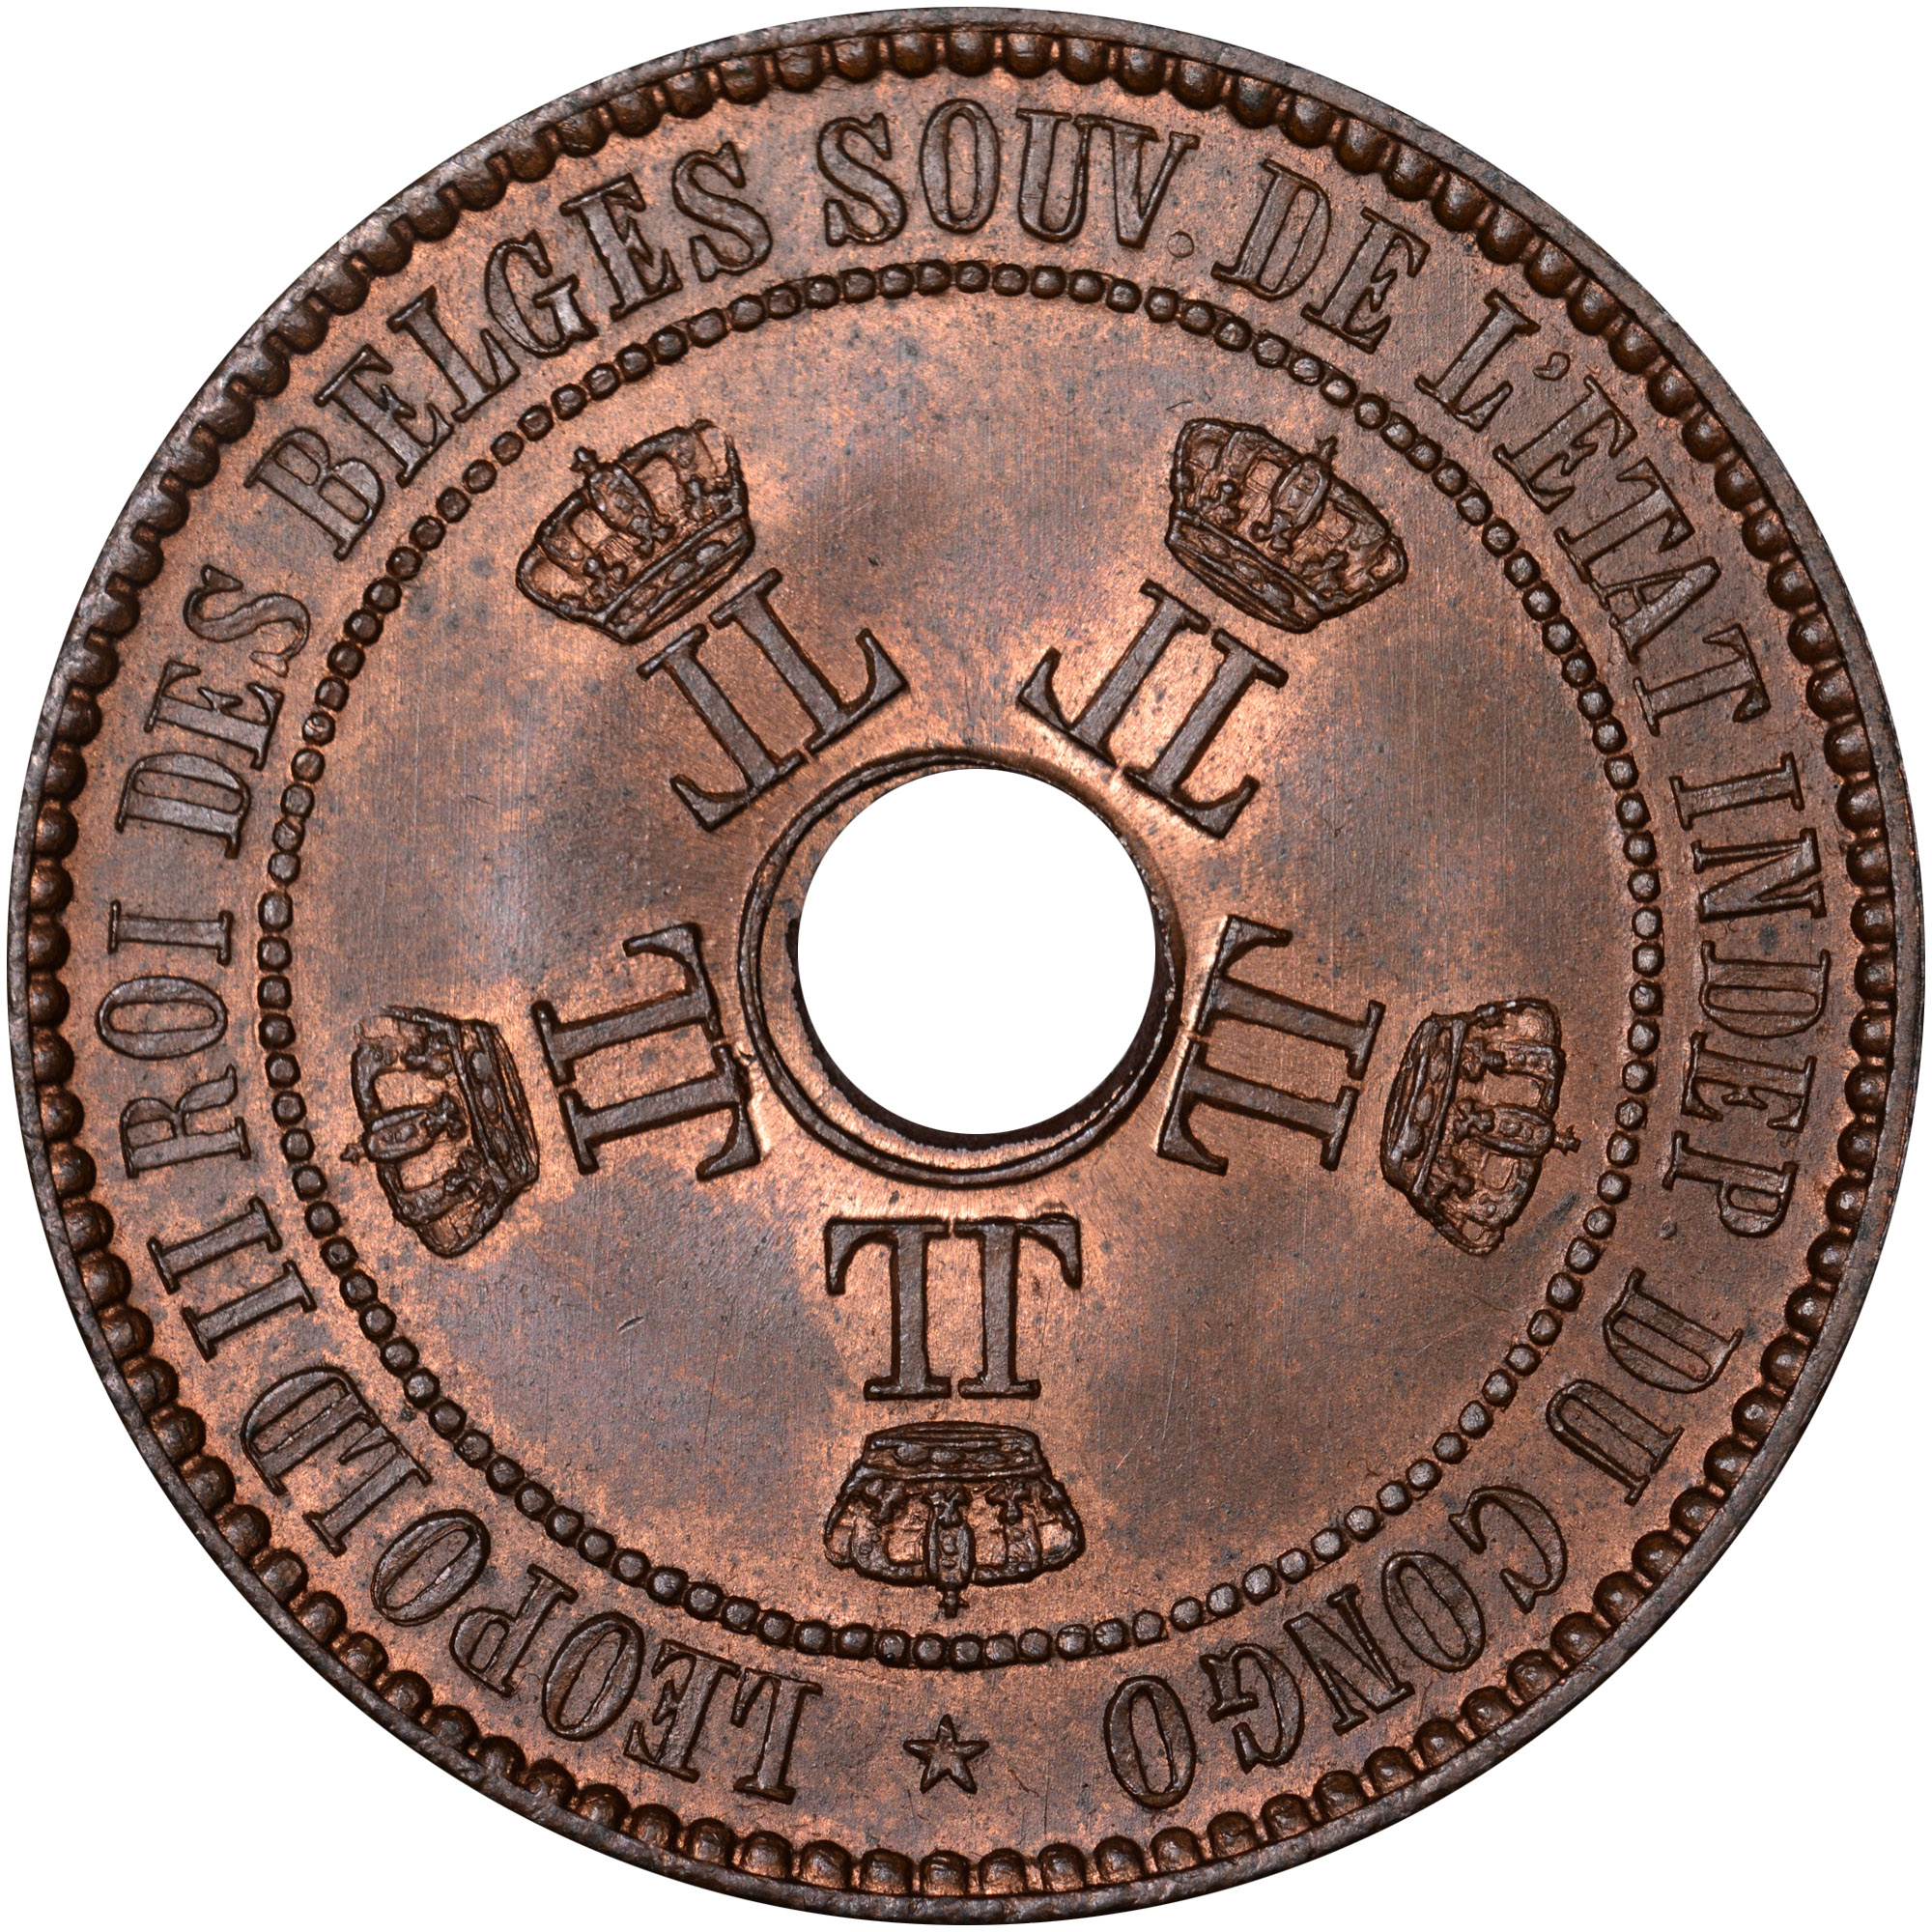 1887-1894 Congo Free State 5 Centimes obverse